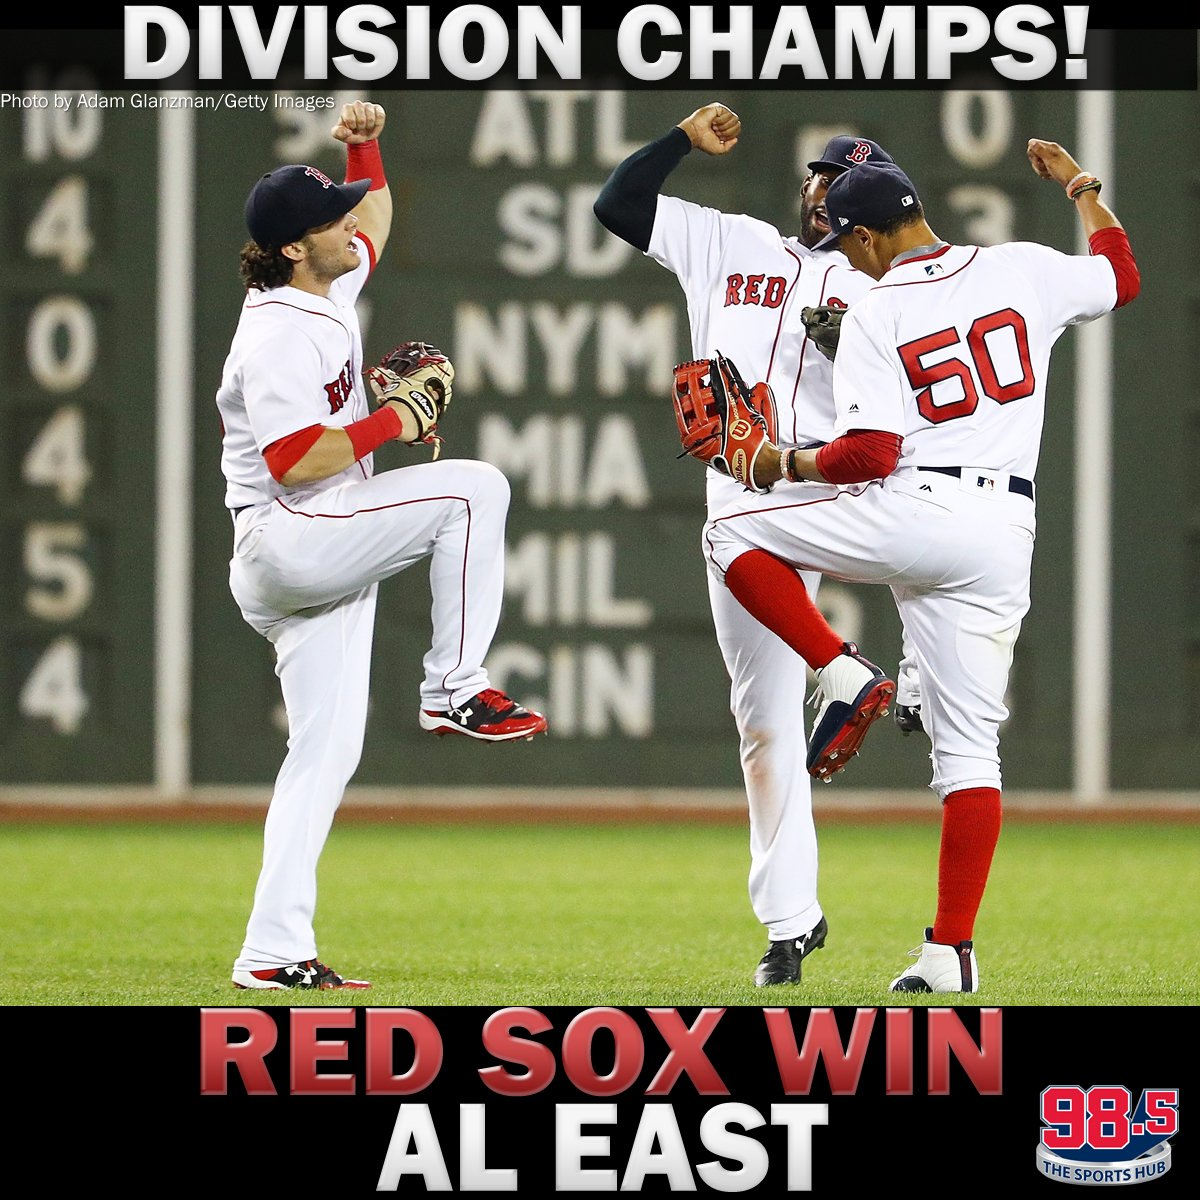 The Red Sox are division champs! https://t.co/zDO5FMhCvf https://t.co/tnXnTi3NcU